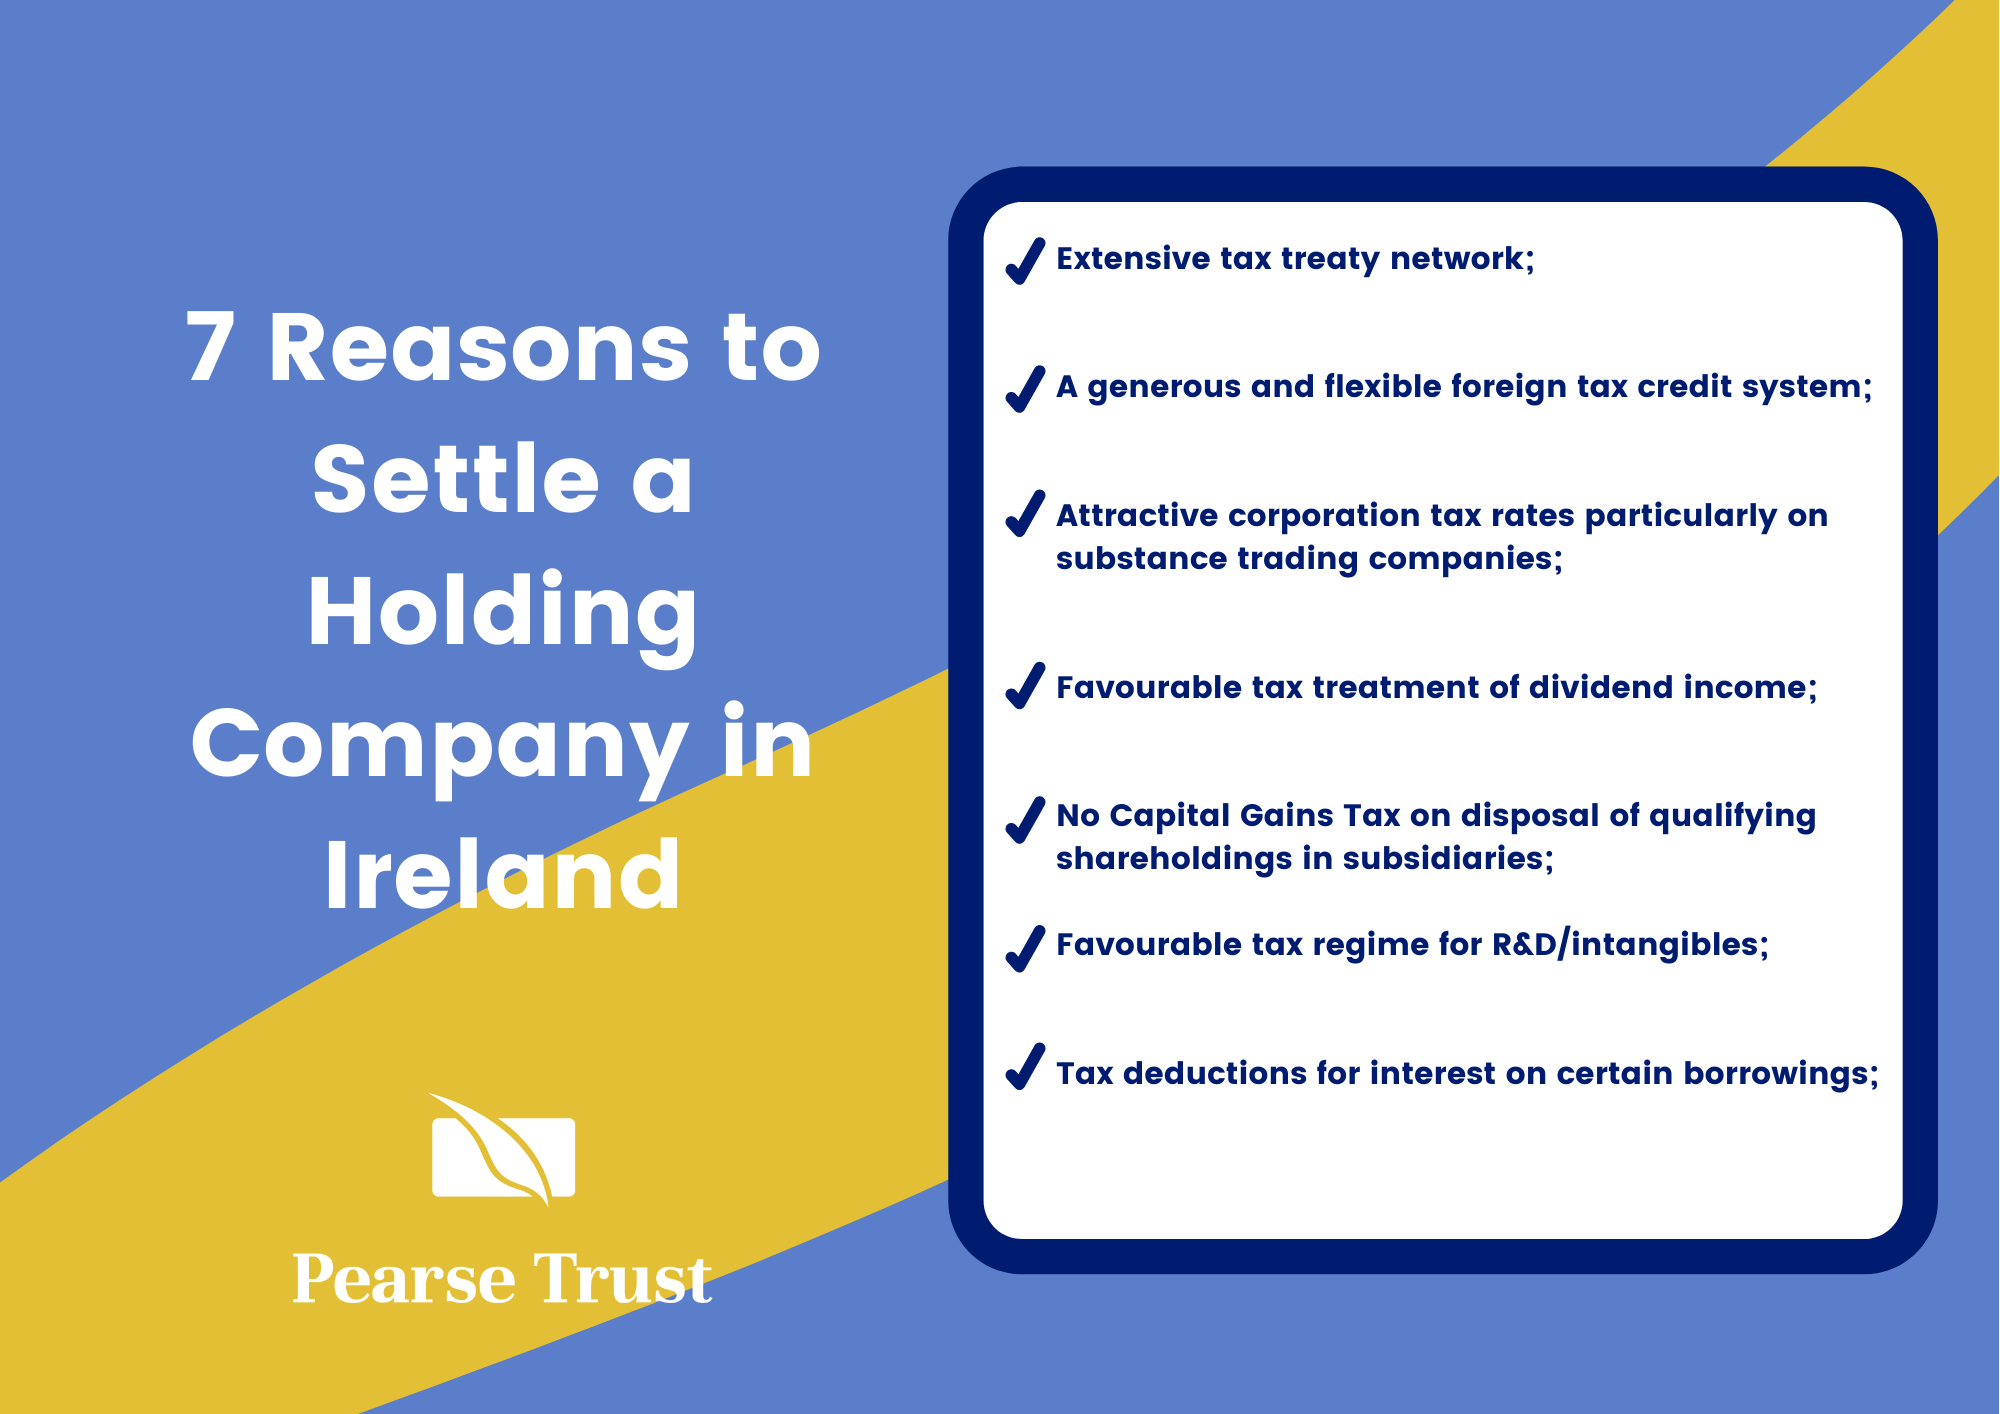 7 Reasons to settle a holding company in Ireland (1) (2)